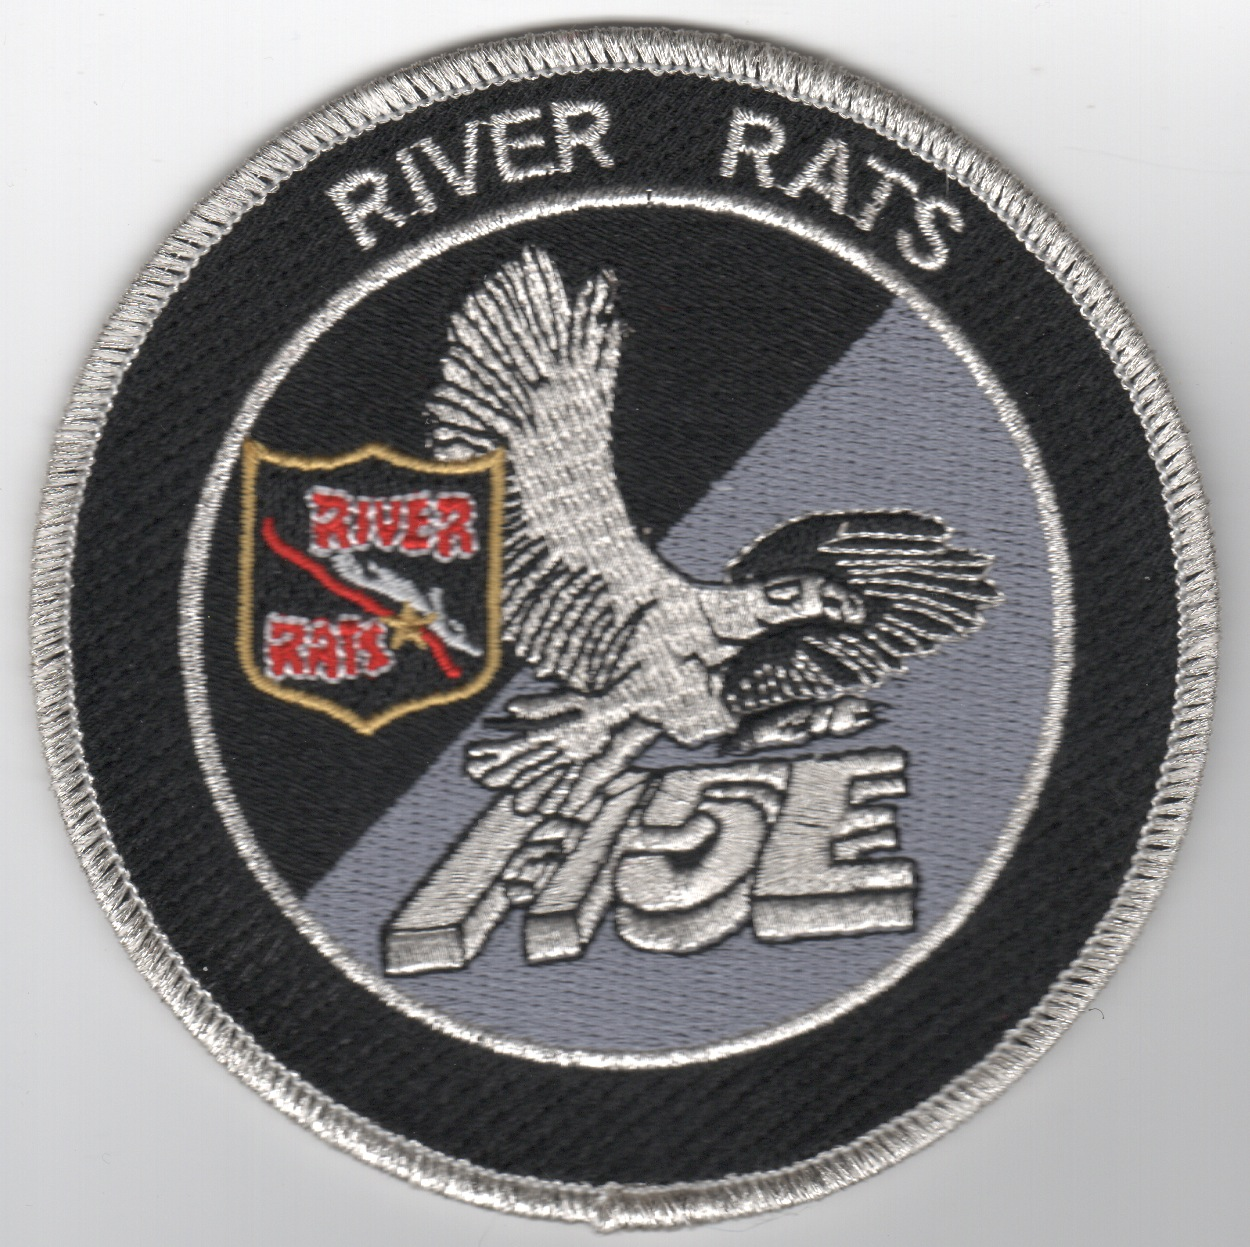 RRVA F-15E Black/Silver 'Tinsel' Patch (No Velcro)